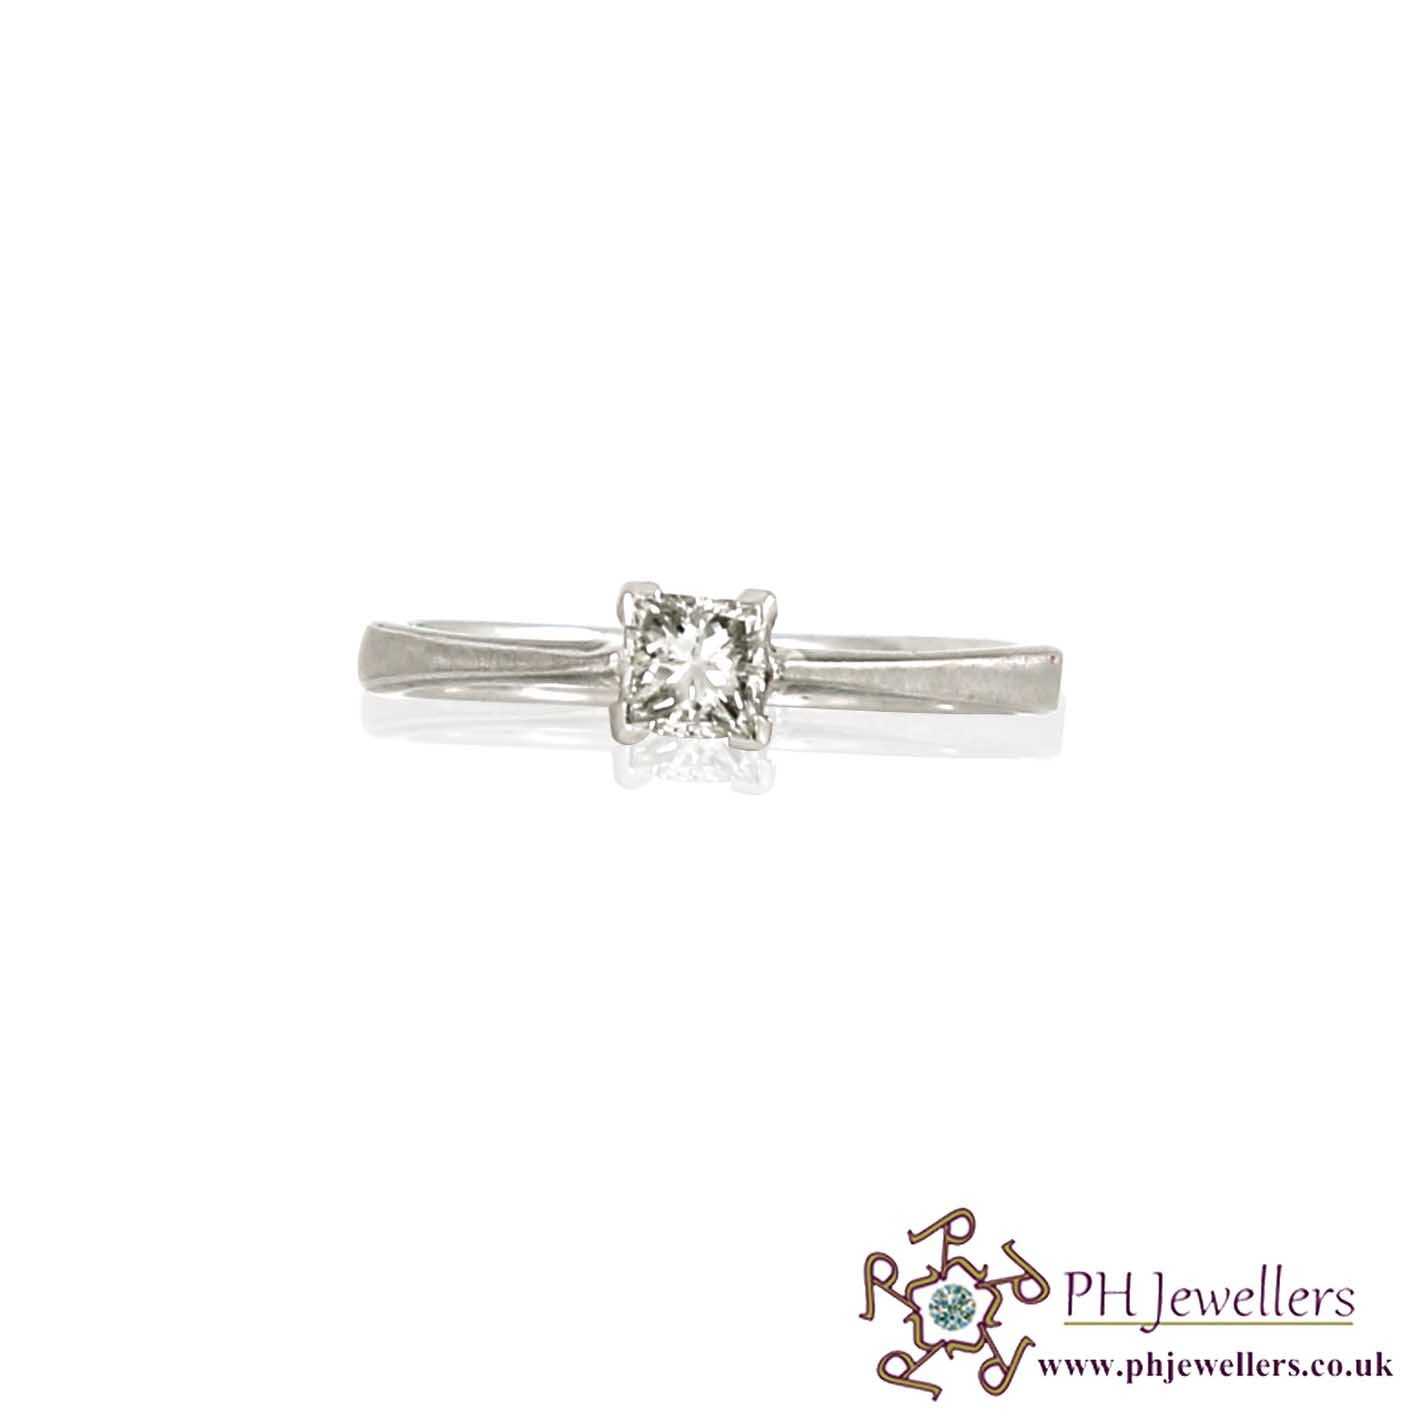 18CT 750 White Gold Engagement Diamond Size L Ring DR918CT 750 White Gold Engagement Diamond Size L Ring DR9